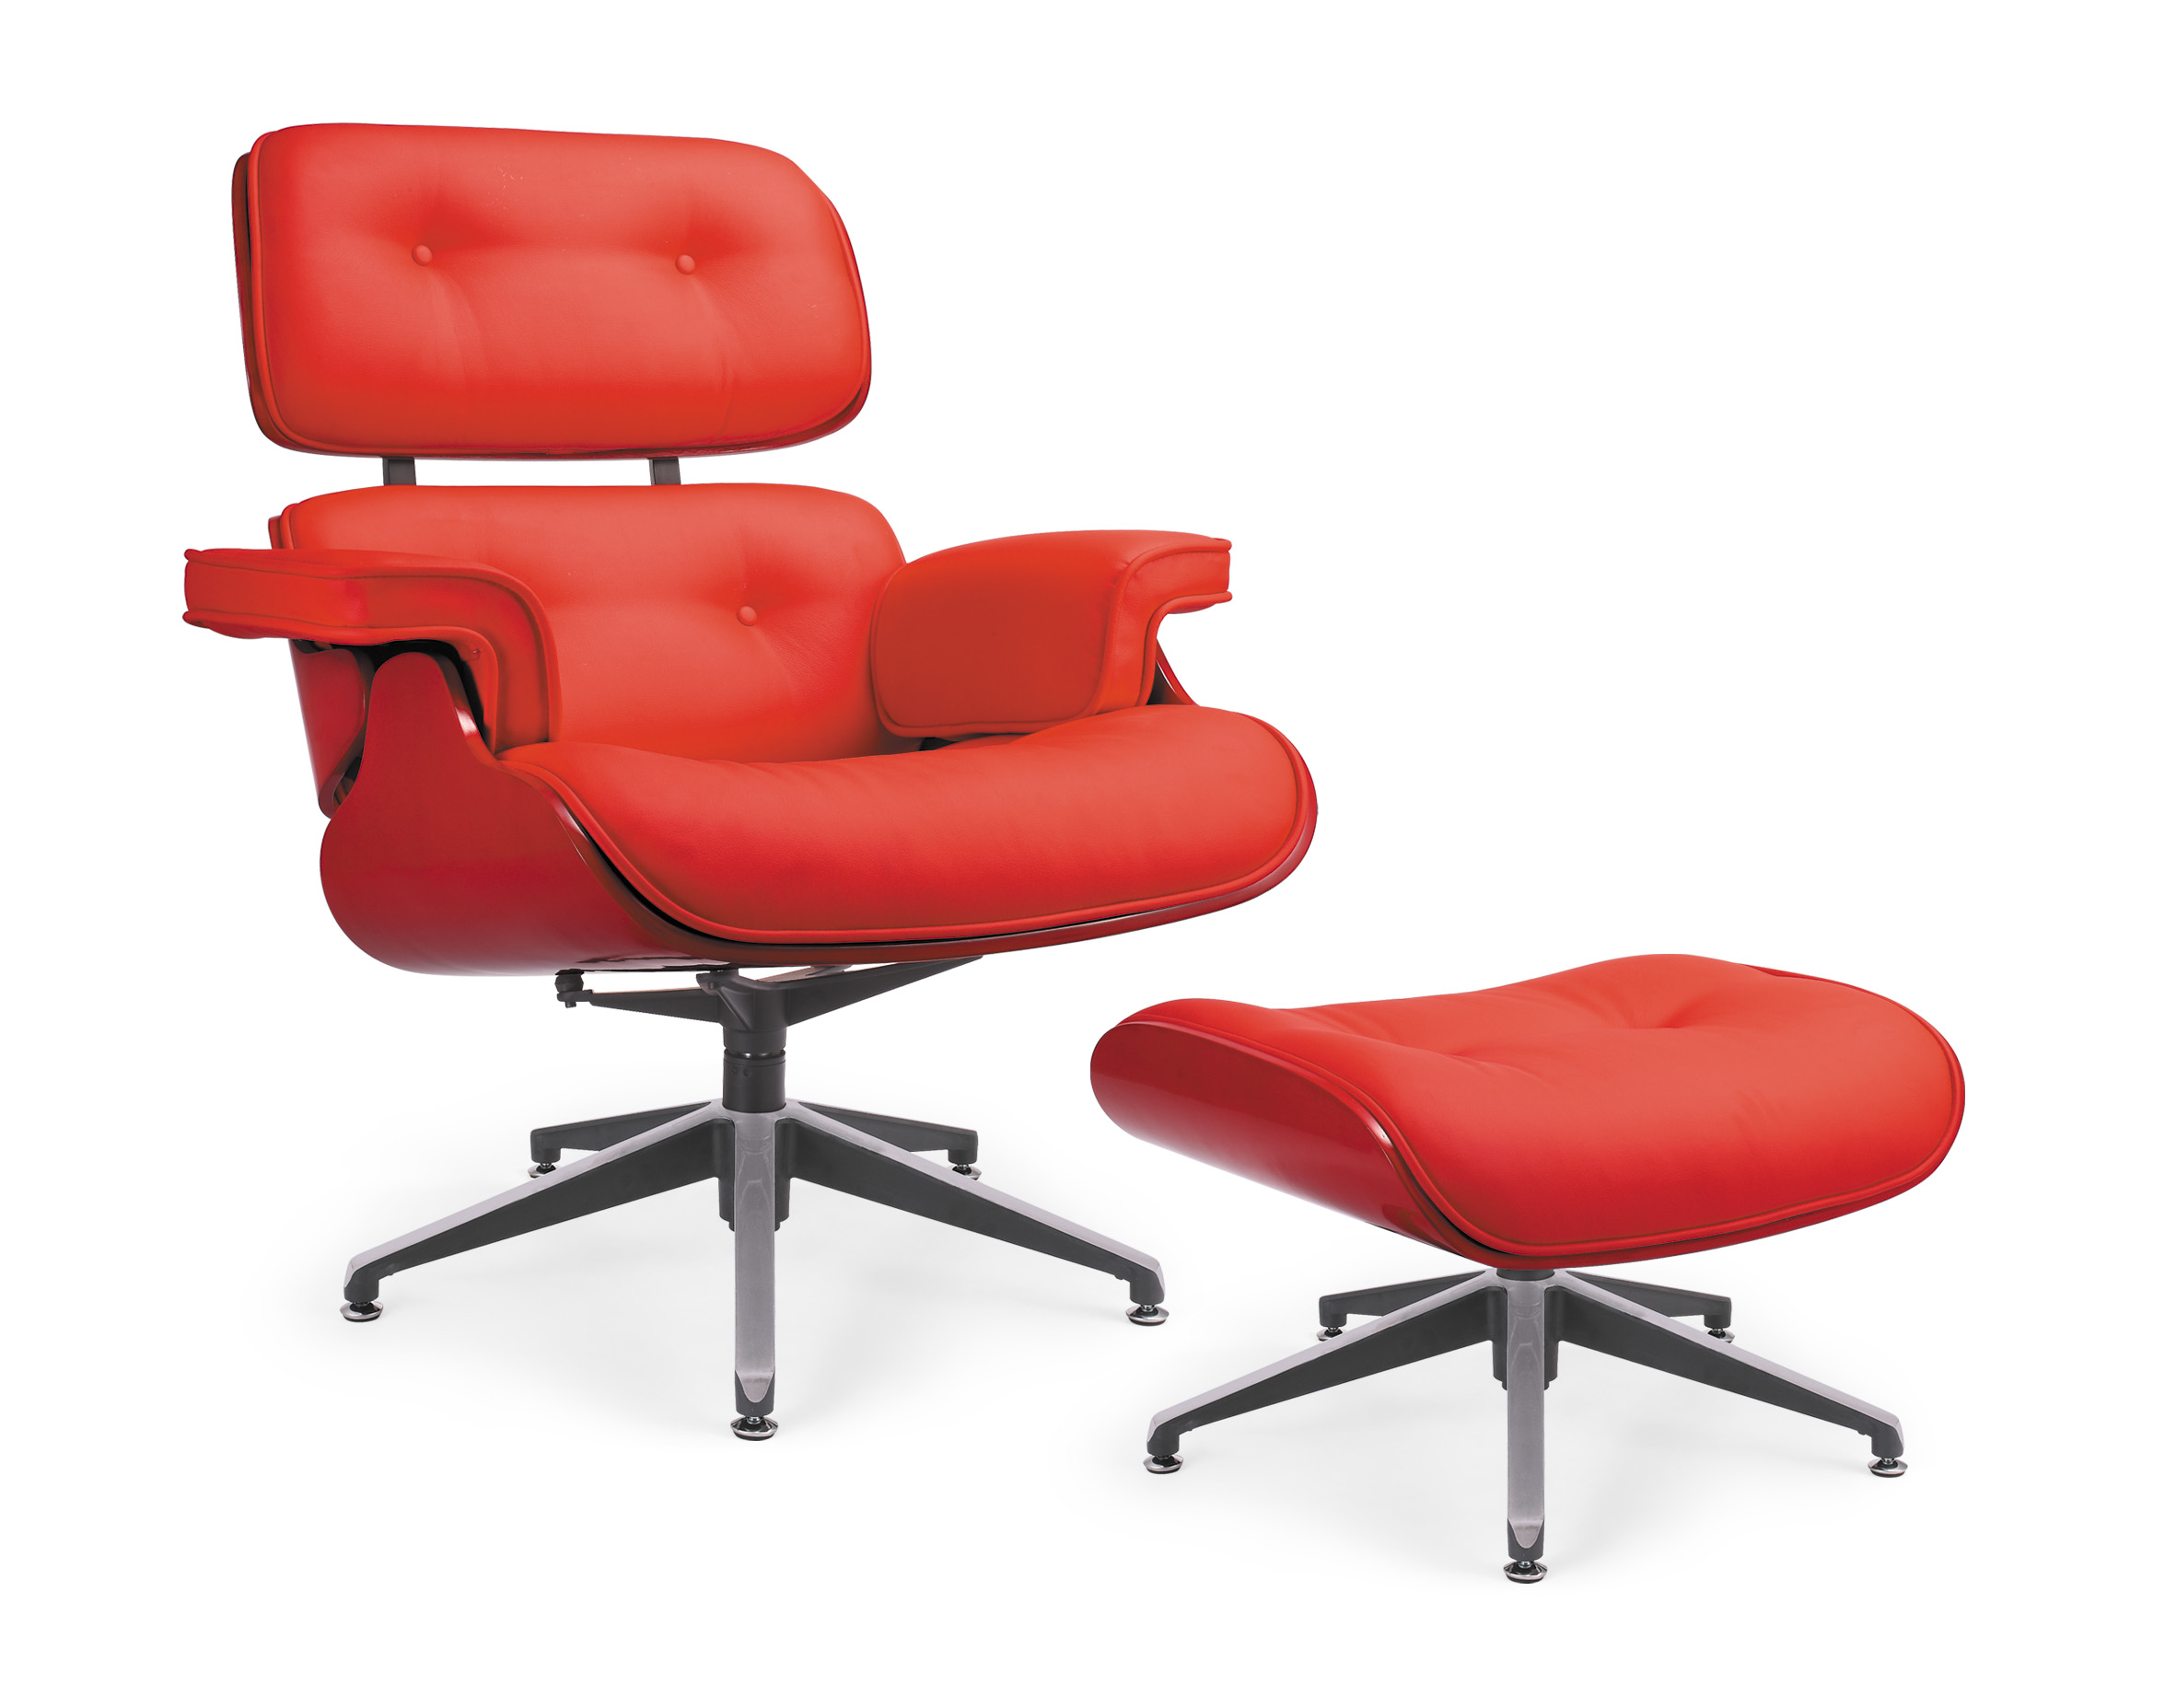 Replica Eames Chair And Stool